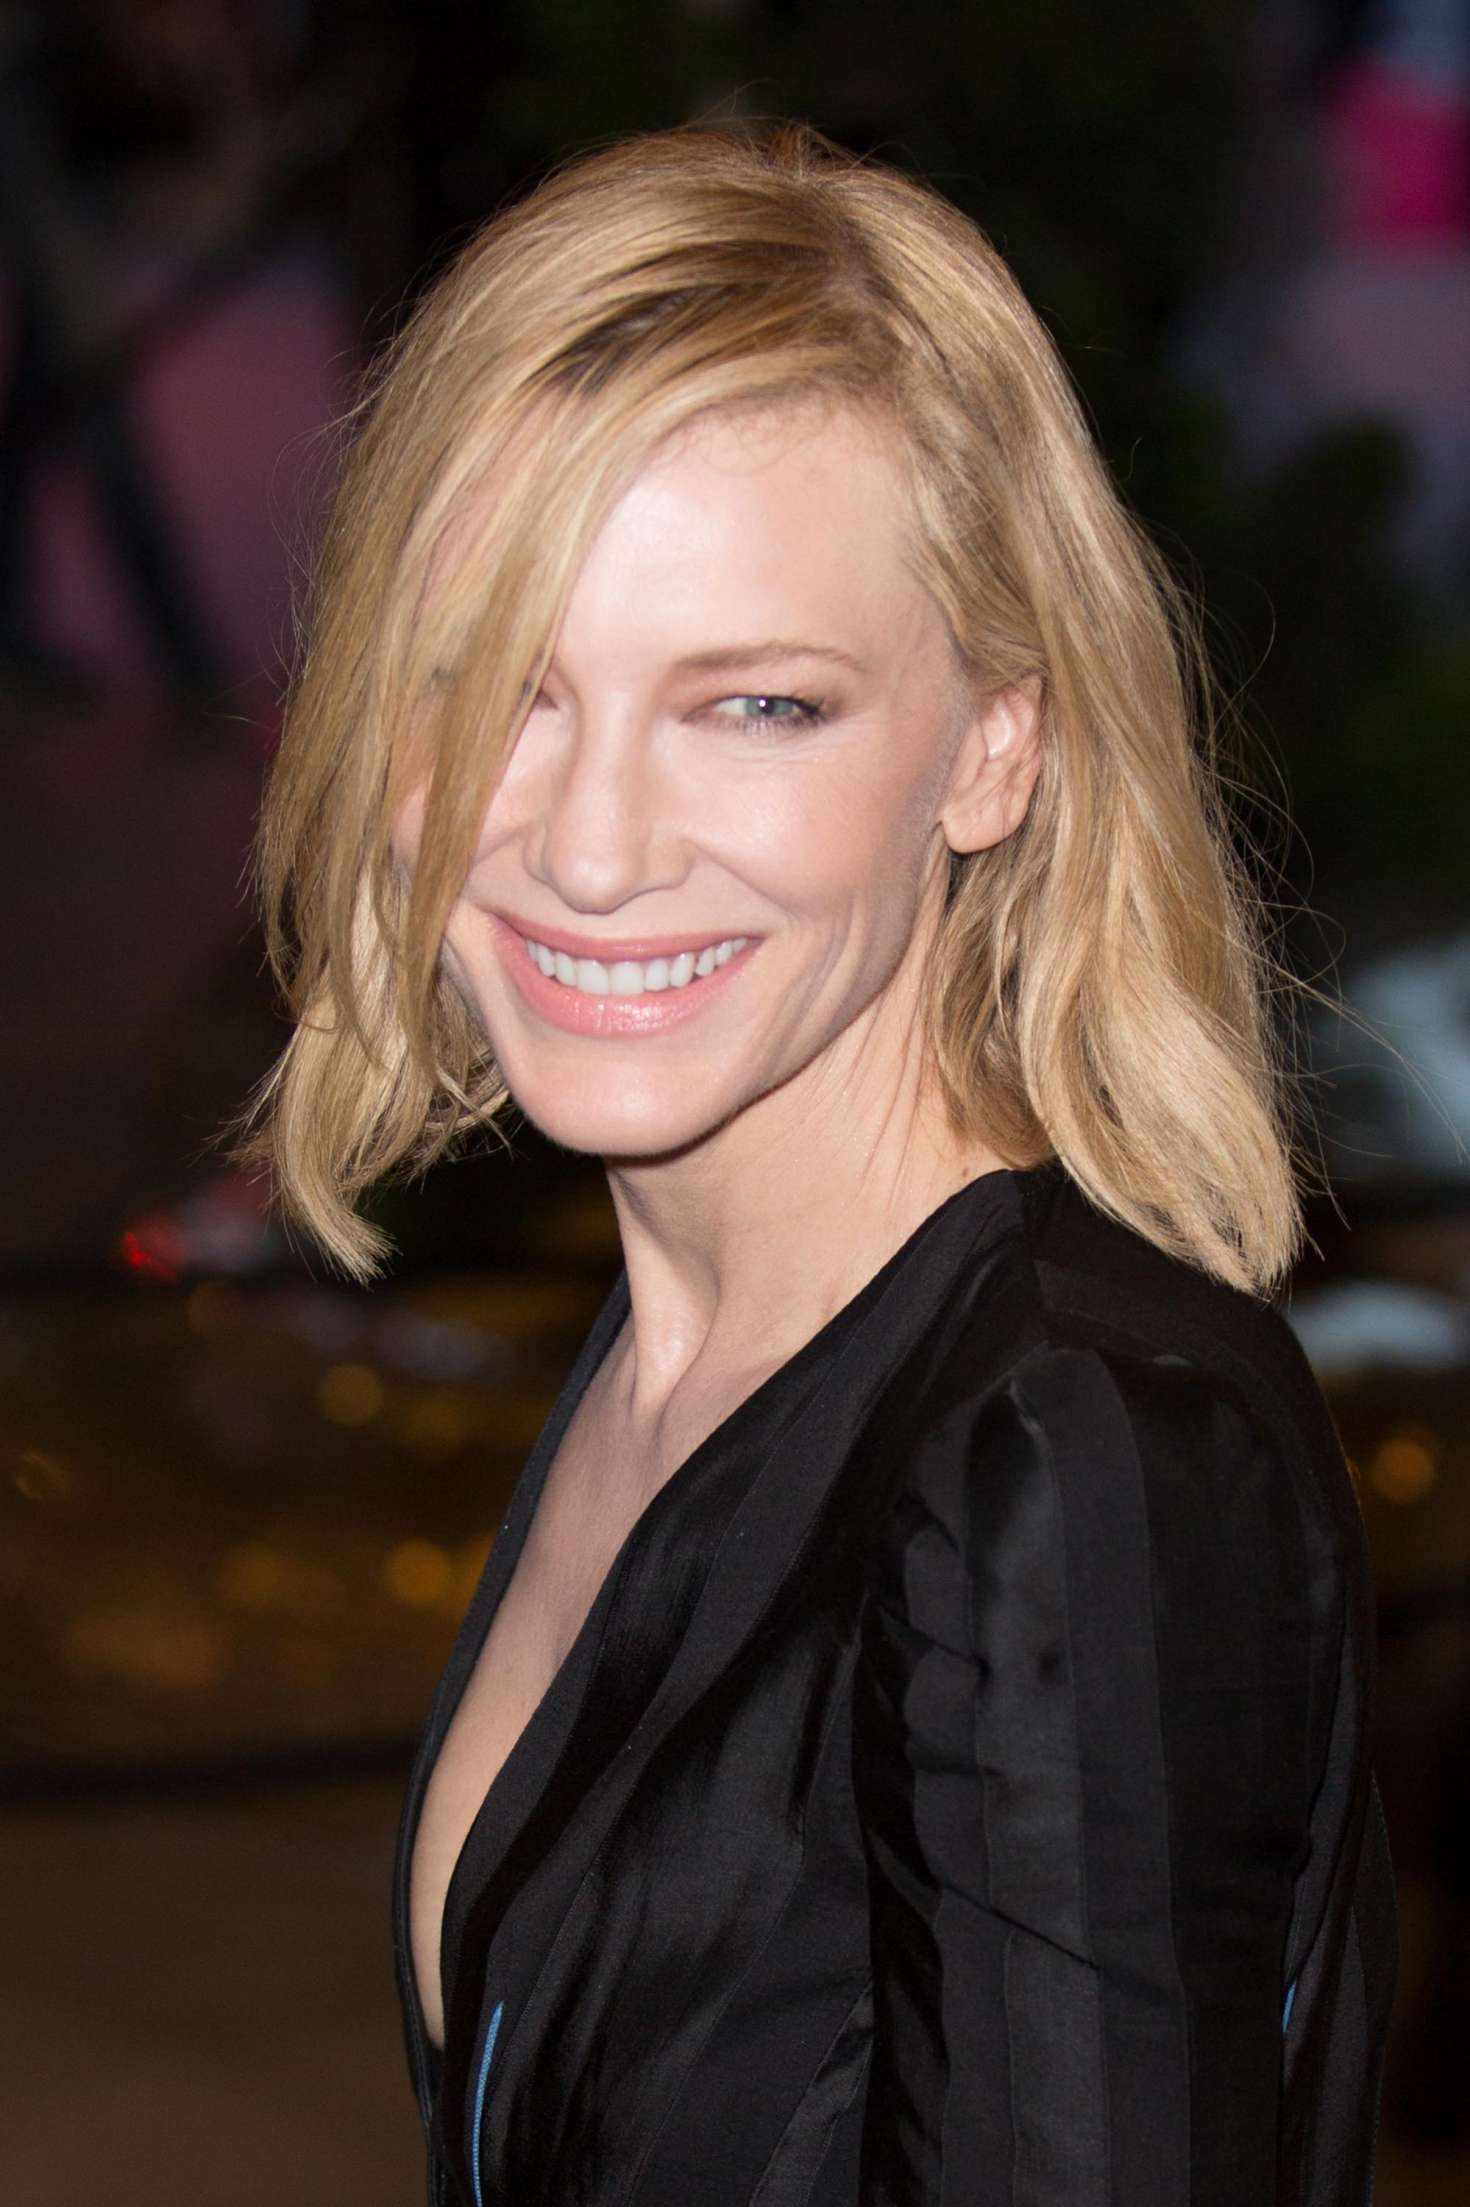 Cate Blanchett 2018 : Cate Blanchett: Arrives at the Vanity Fair Party -03